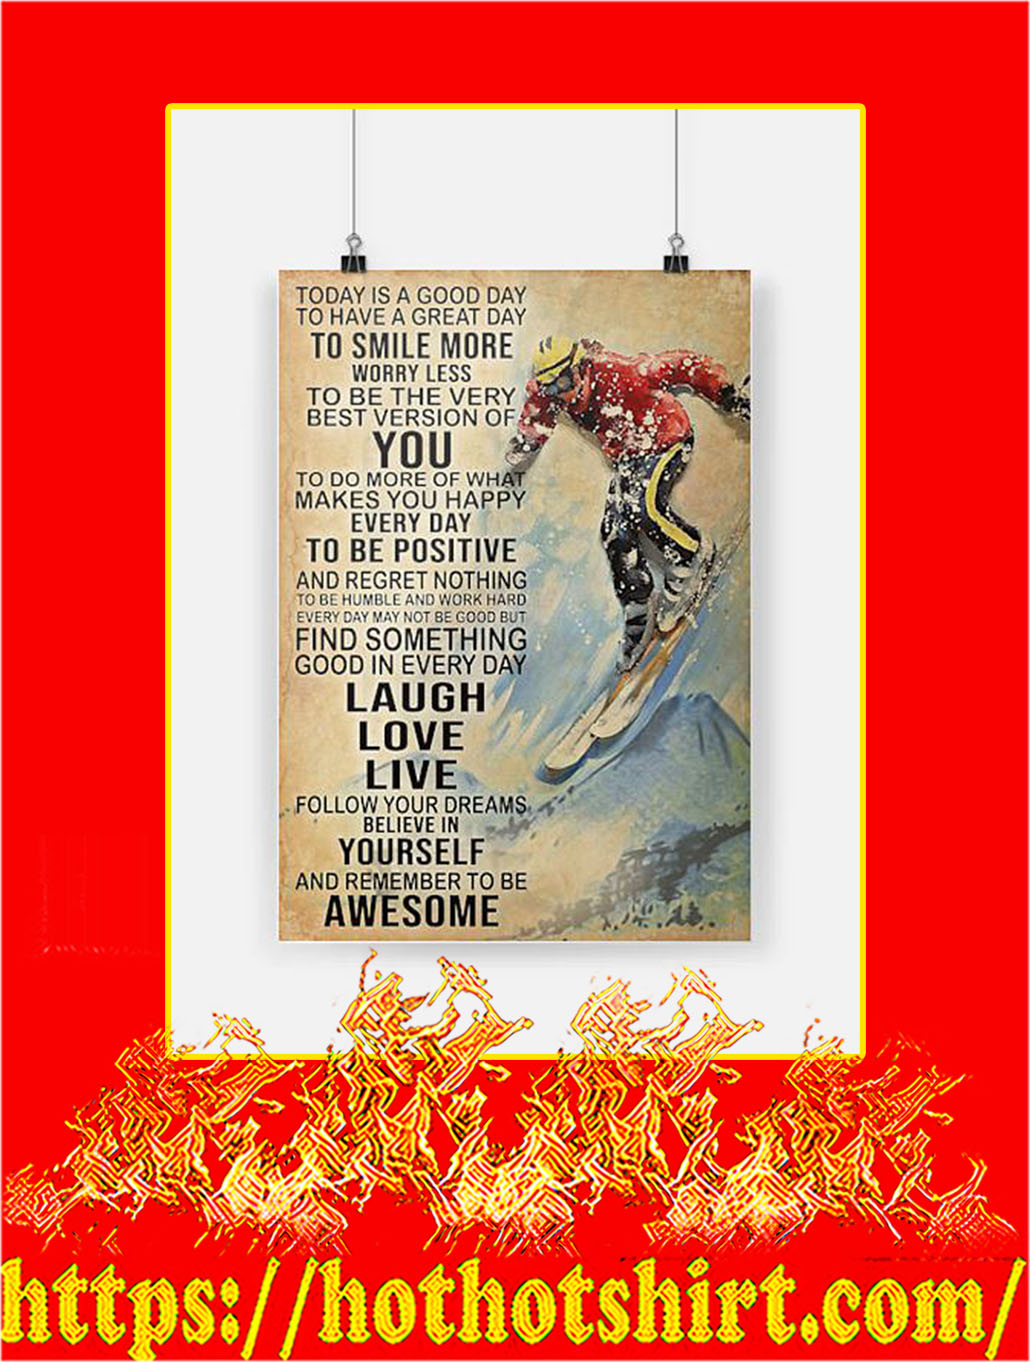 Skiing Today Is A Good Day Poster - A4